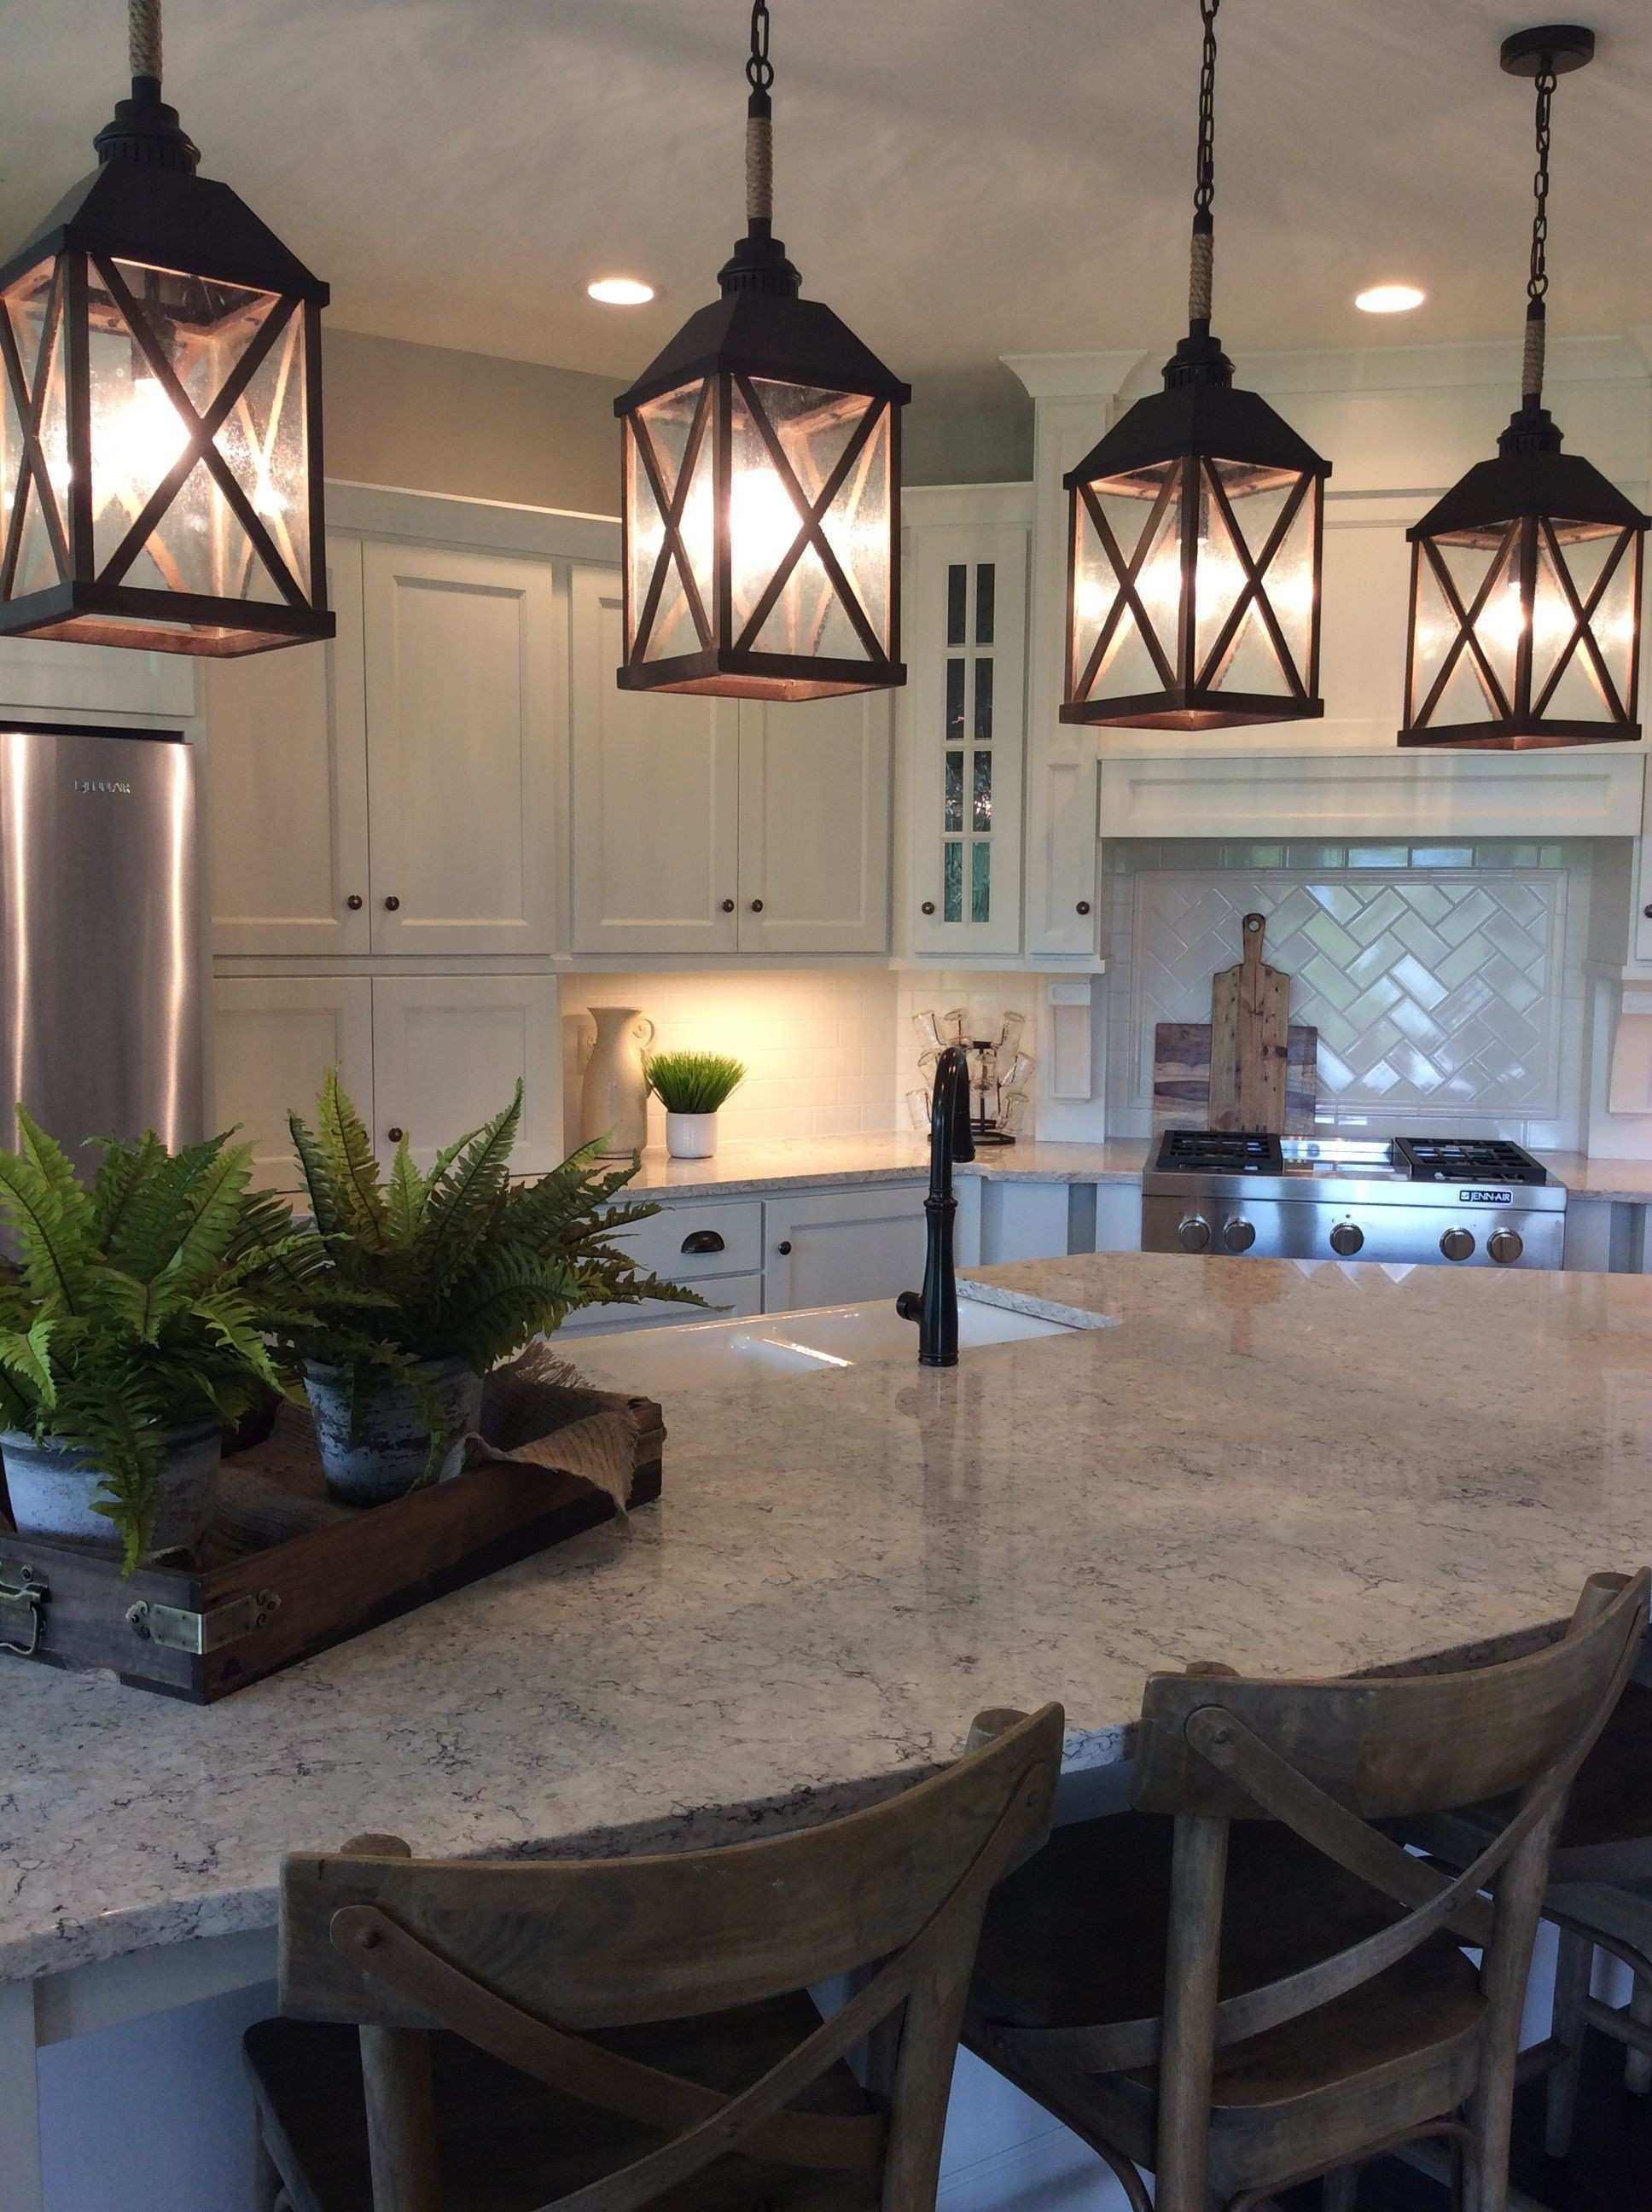 Find And Save Inspiration About Kitchen Island Designs Ideas On Steeringnews Com See More Ideas About Home Decor Kitchen Kitchen Island Lighting House Styles